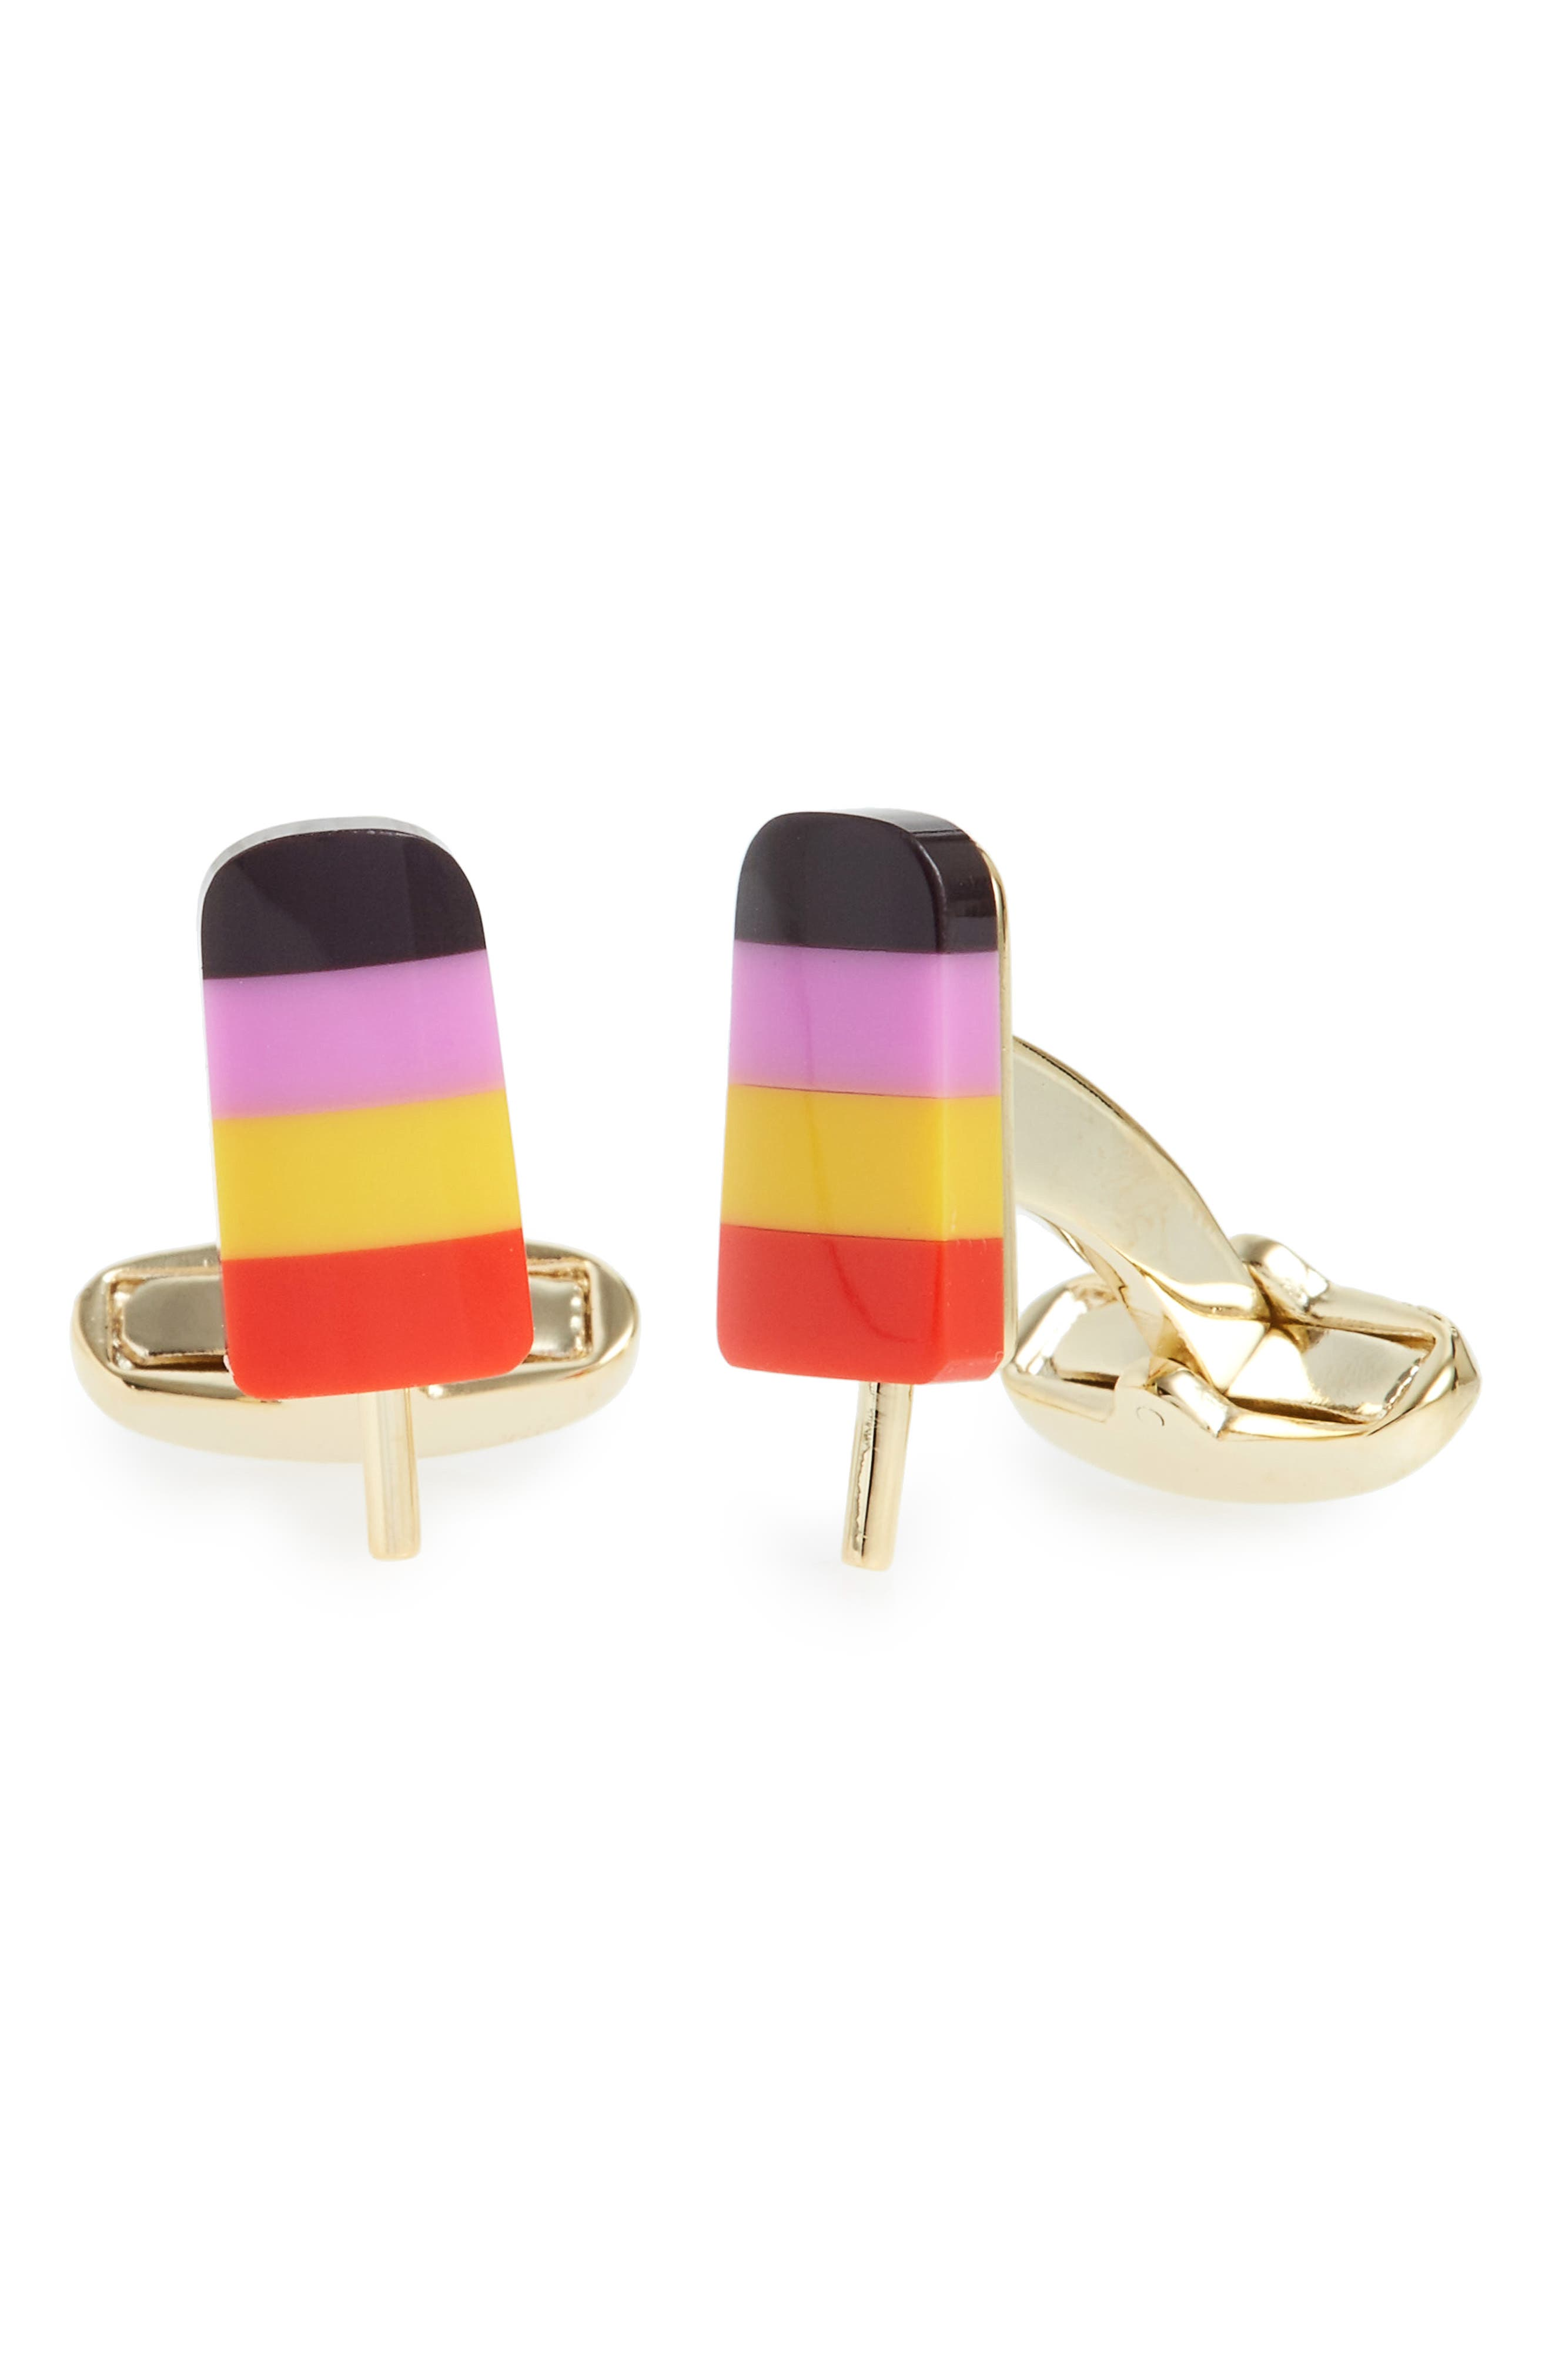 Popsicle Cuff Links,                             Main thumbnail 1, color,                             040